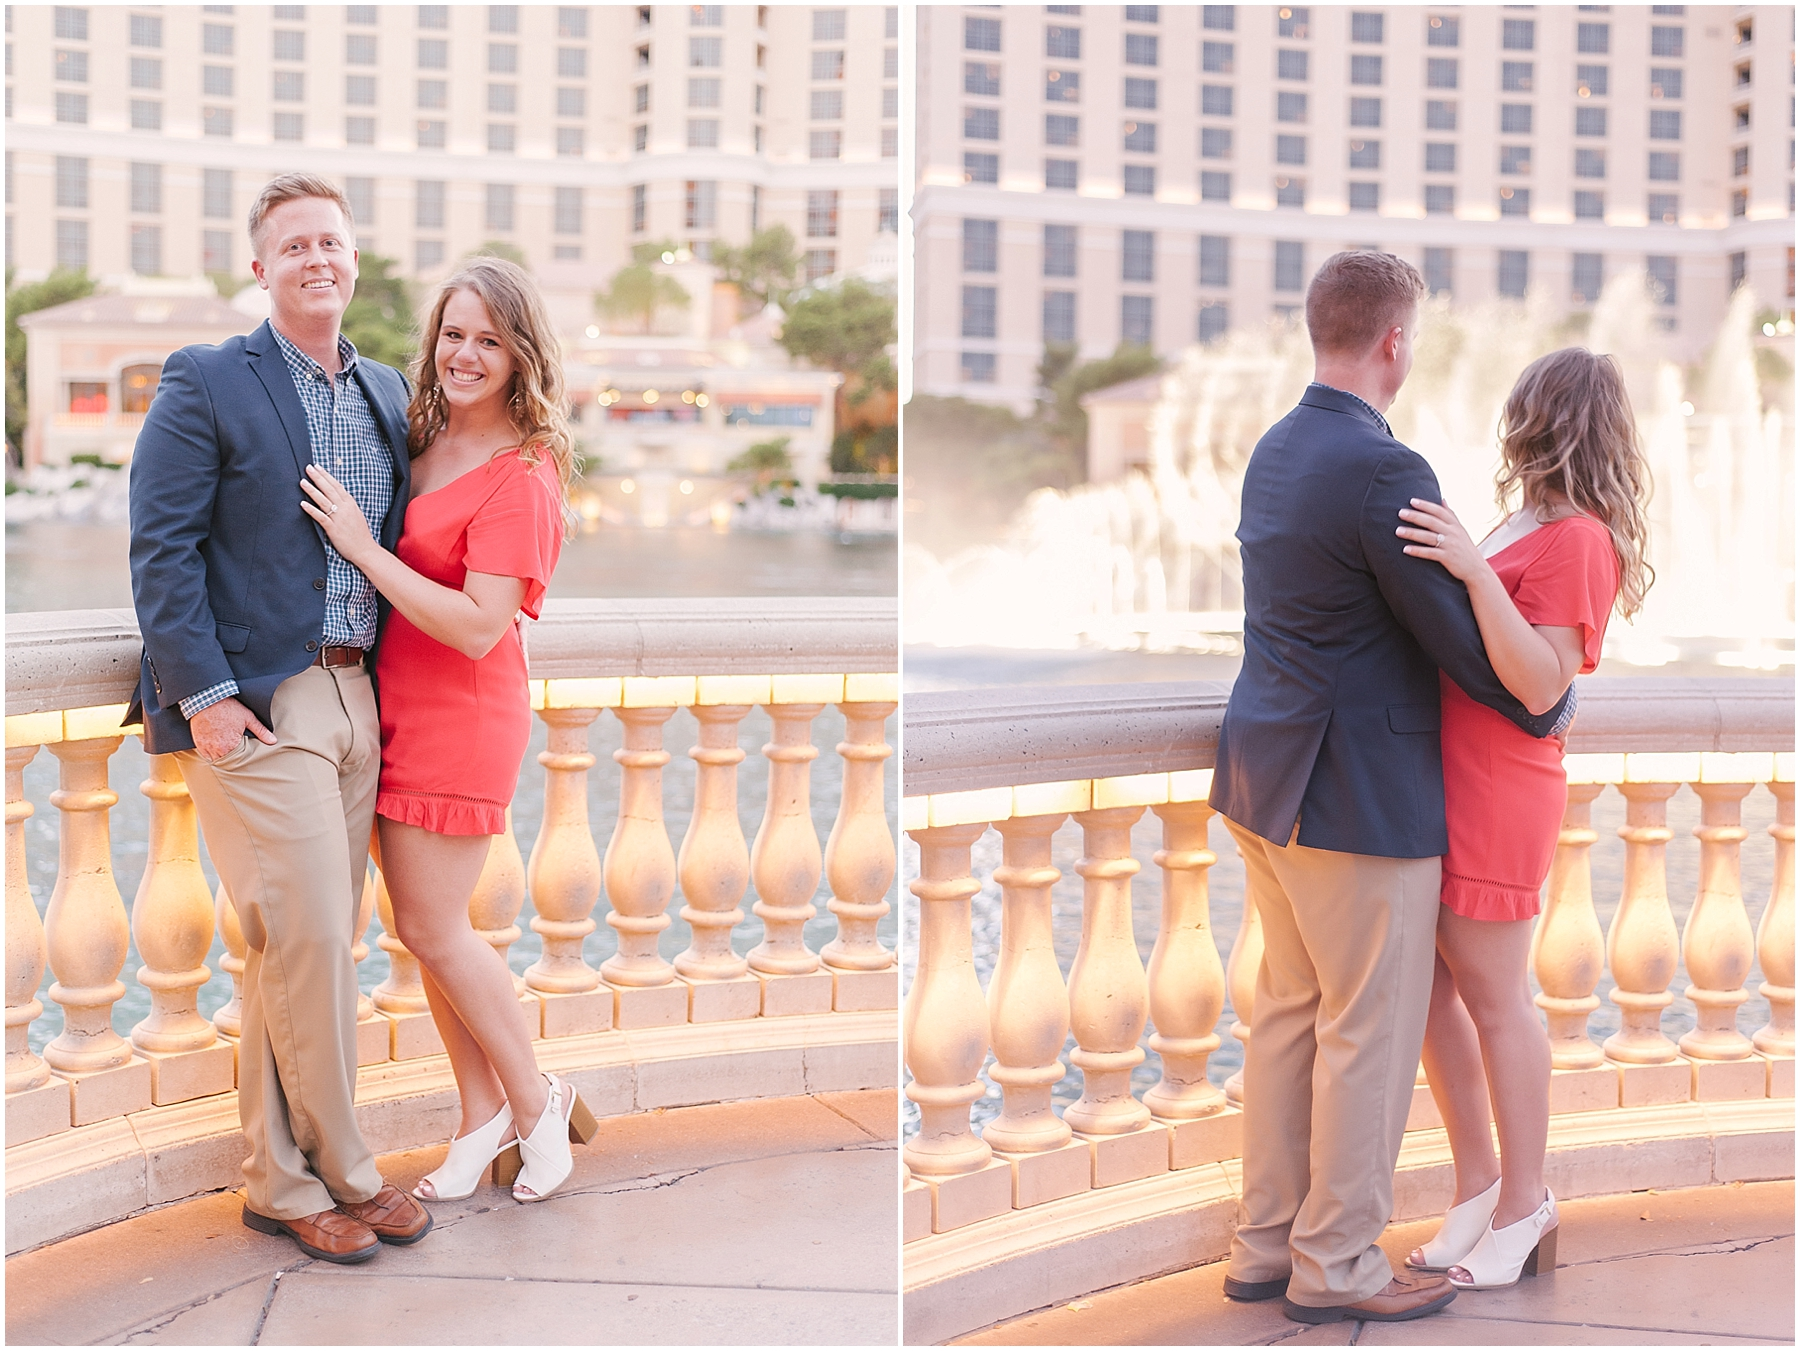 Las-vegas-proposal-photographer-blog-14.jpg